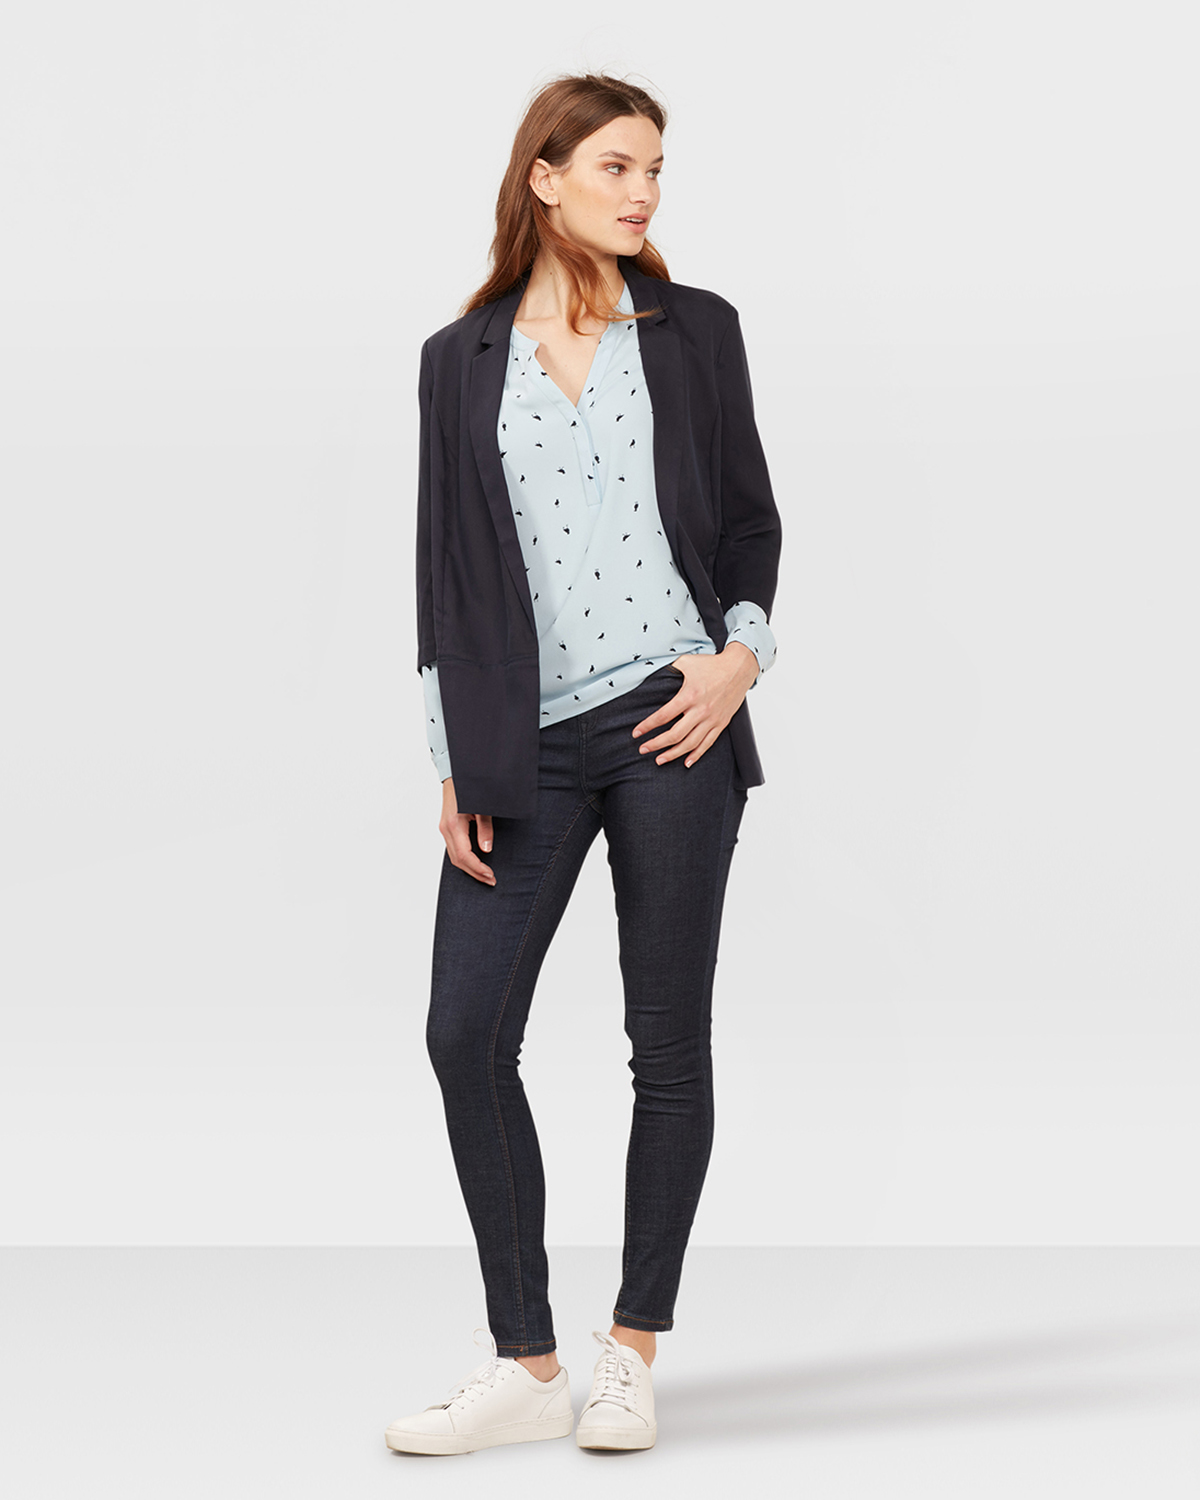 While the boyfriend blazer takes its inspiration from oversized pieces that look like something from his closet, it is designed specifically with the female form in mind. Boyfriend blazers, in addition to being cut slightly larger than a traditional women's blazer, are tailored in such a .